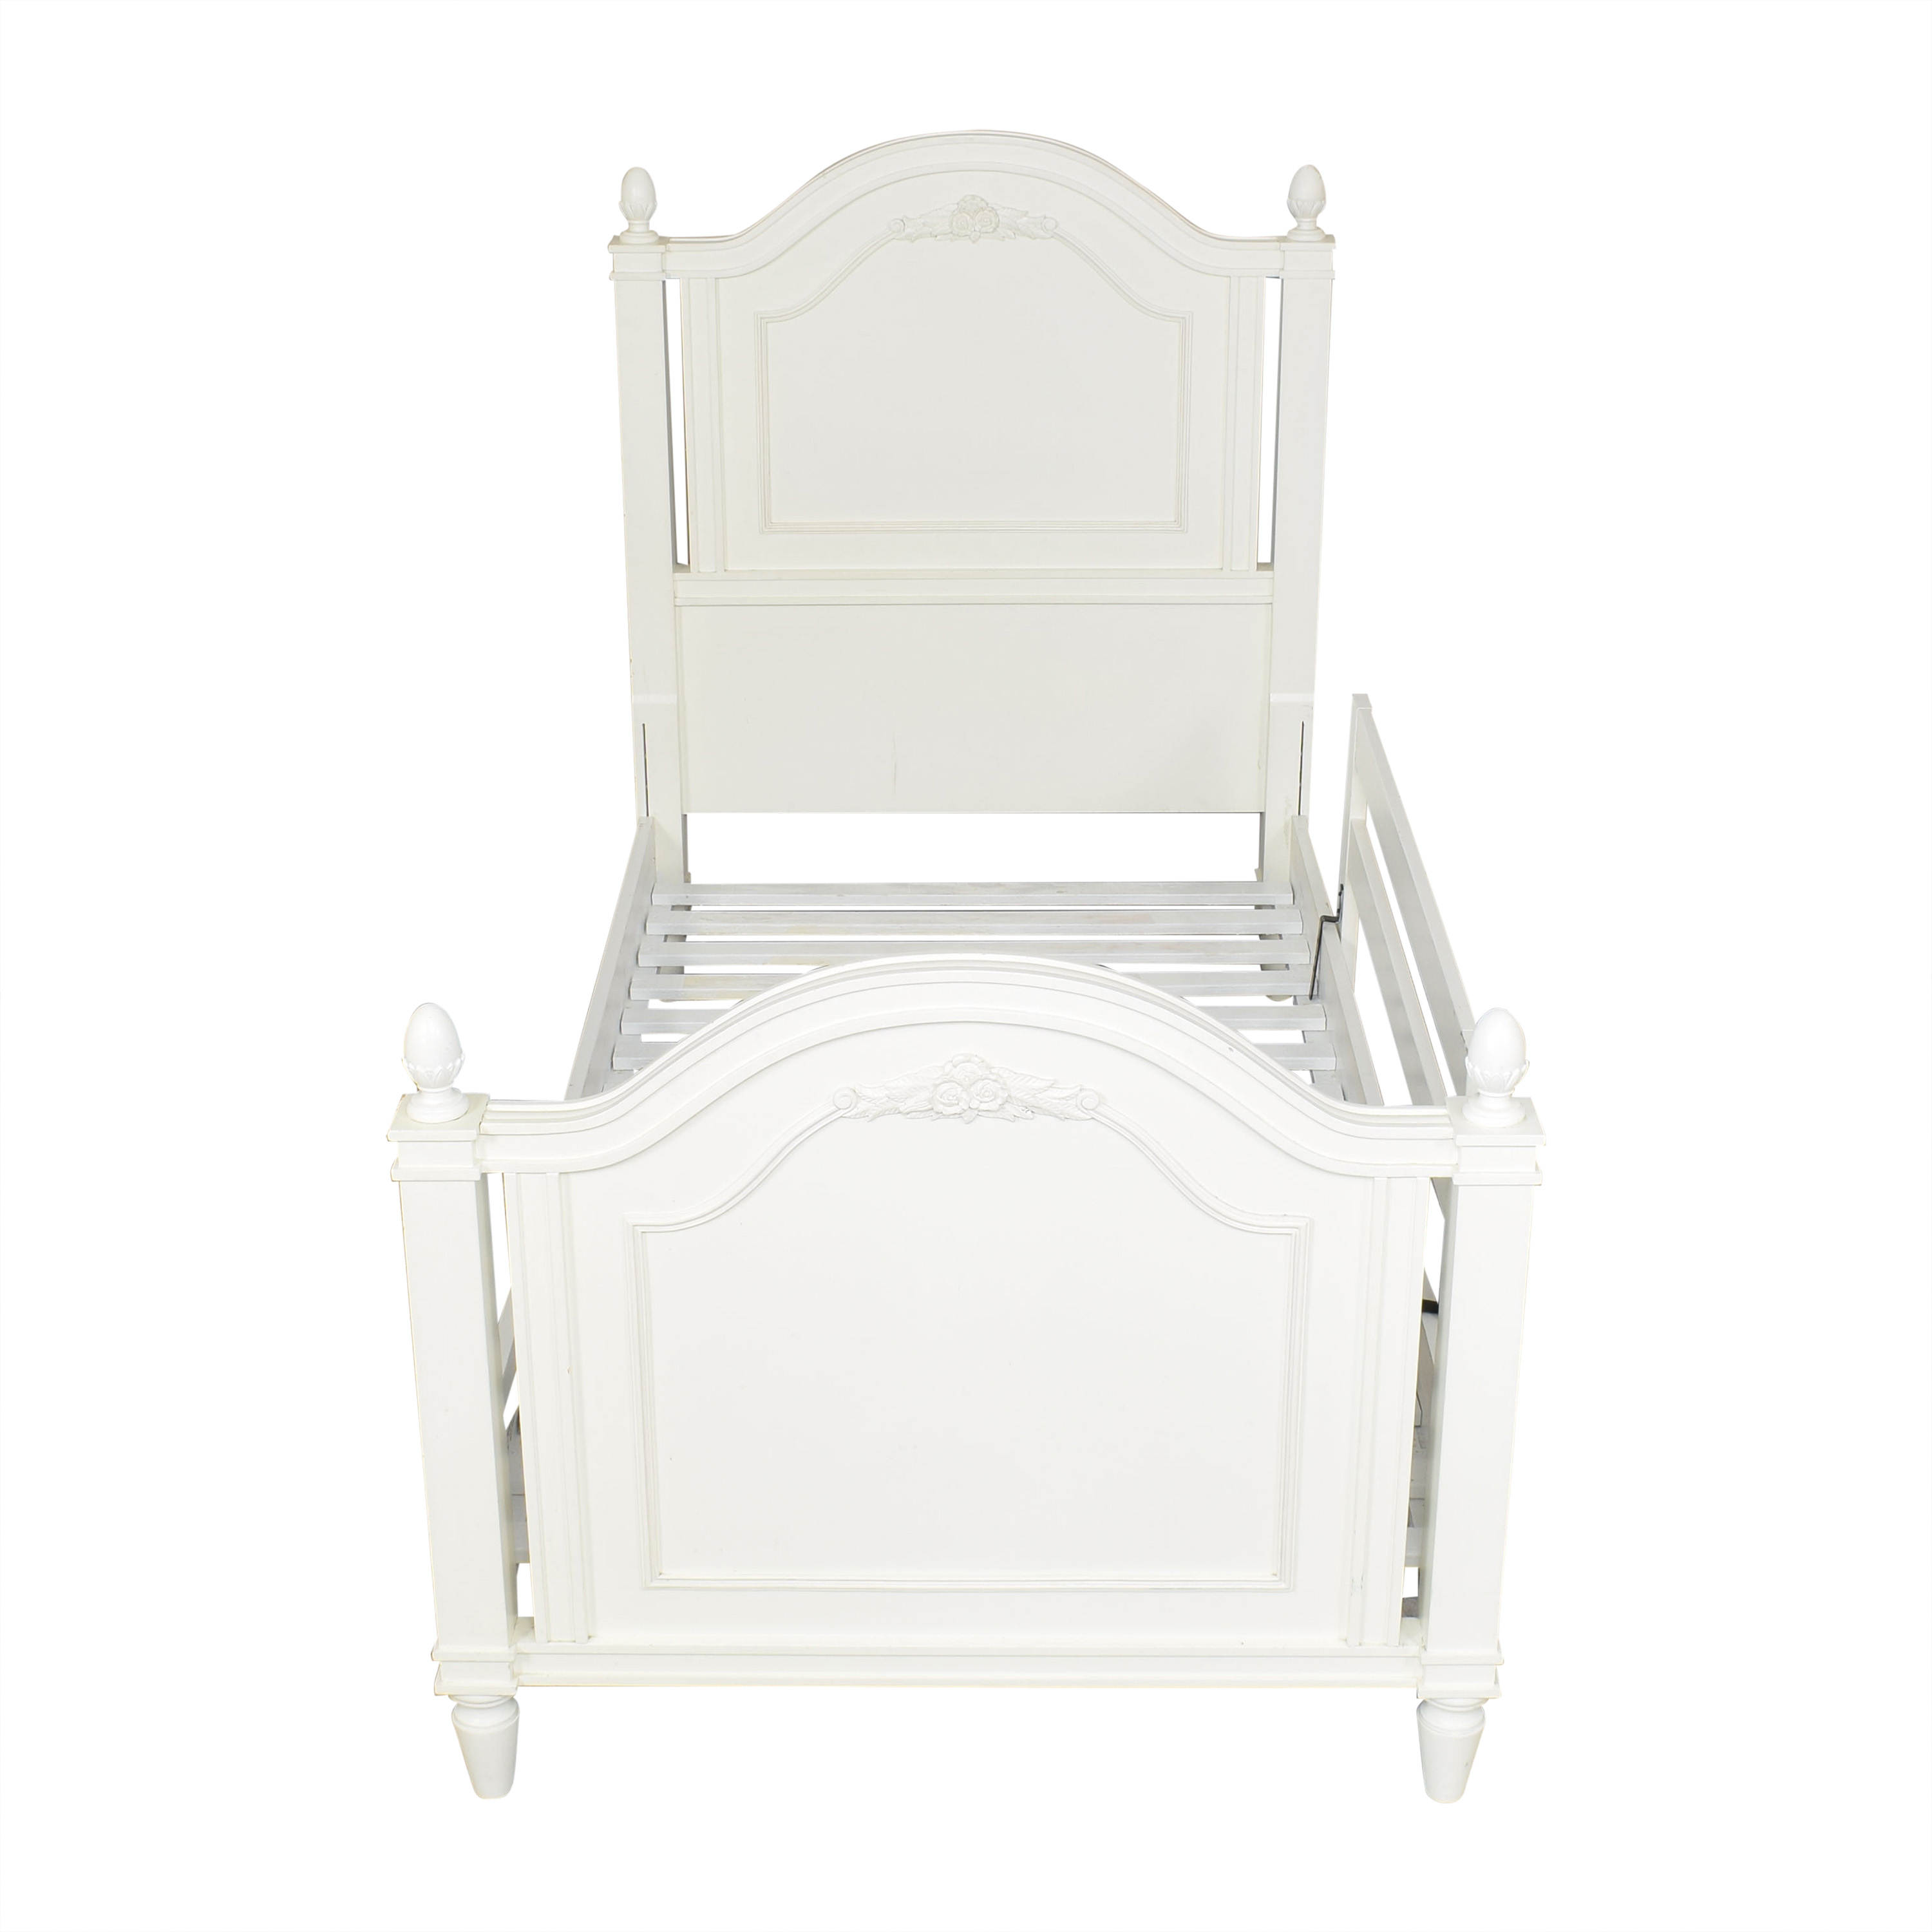 Stanley Furniture Stanley Furniture Young America Twin Low Post Bed price